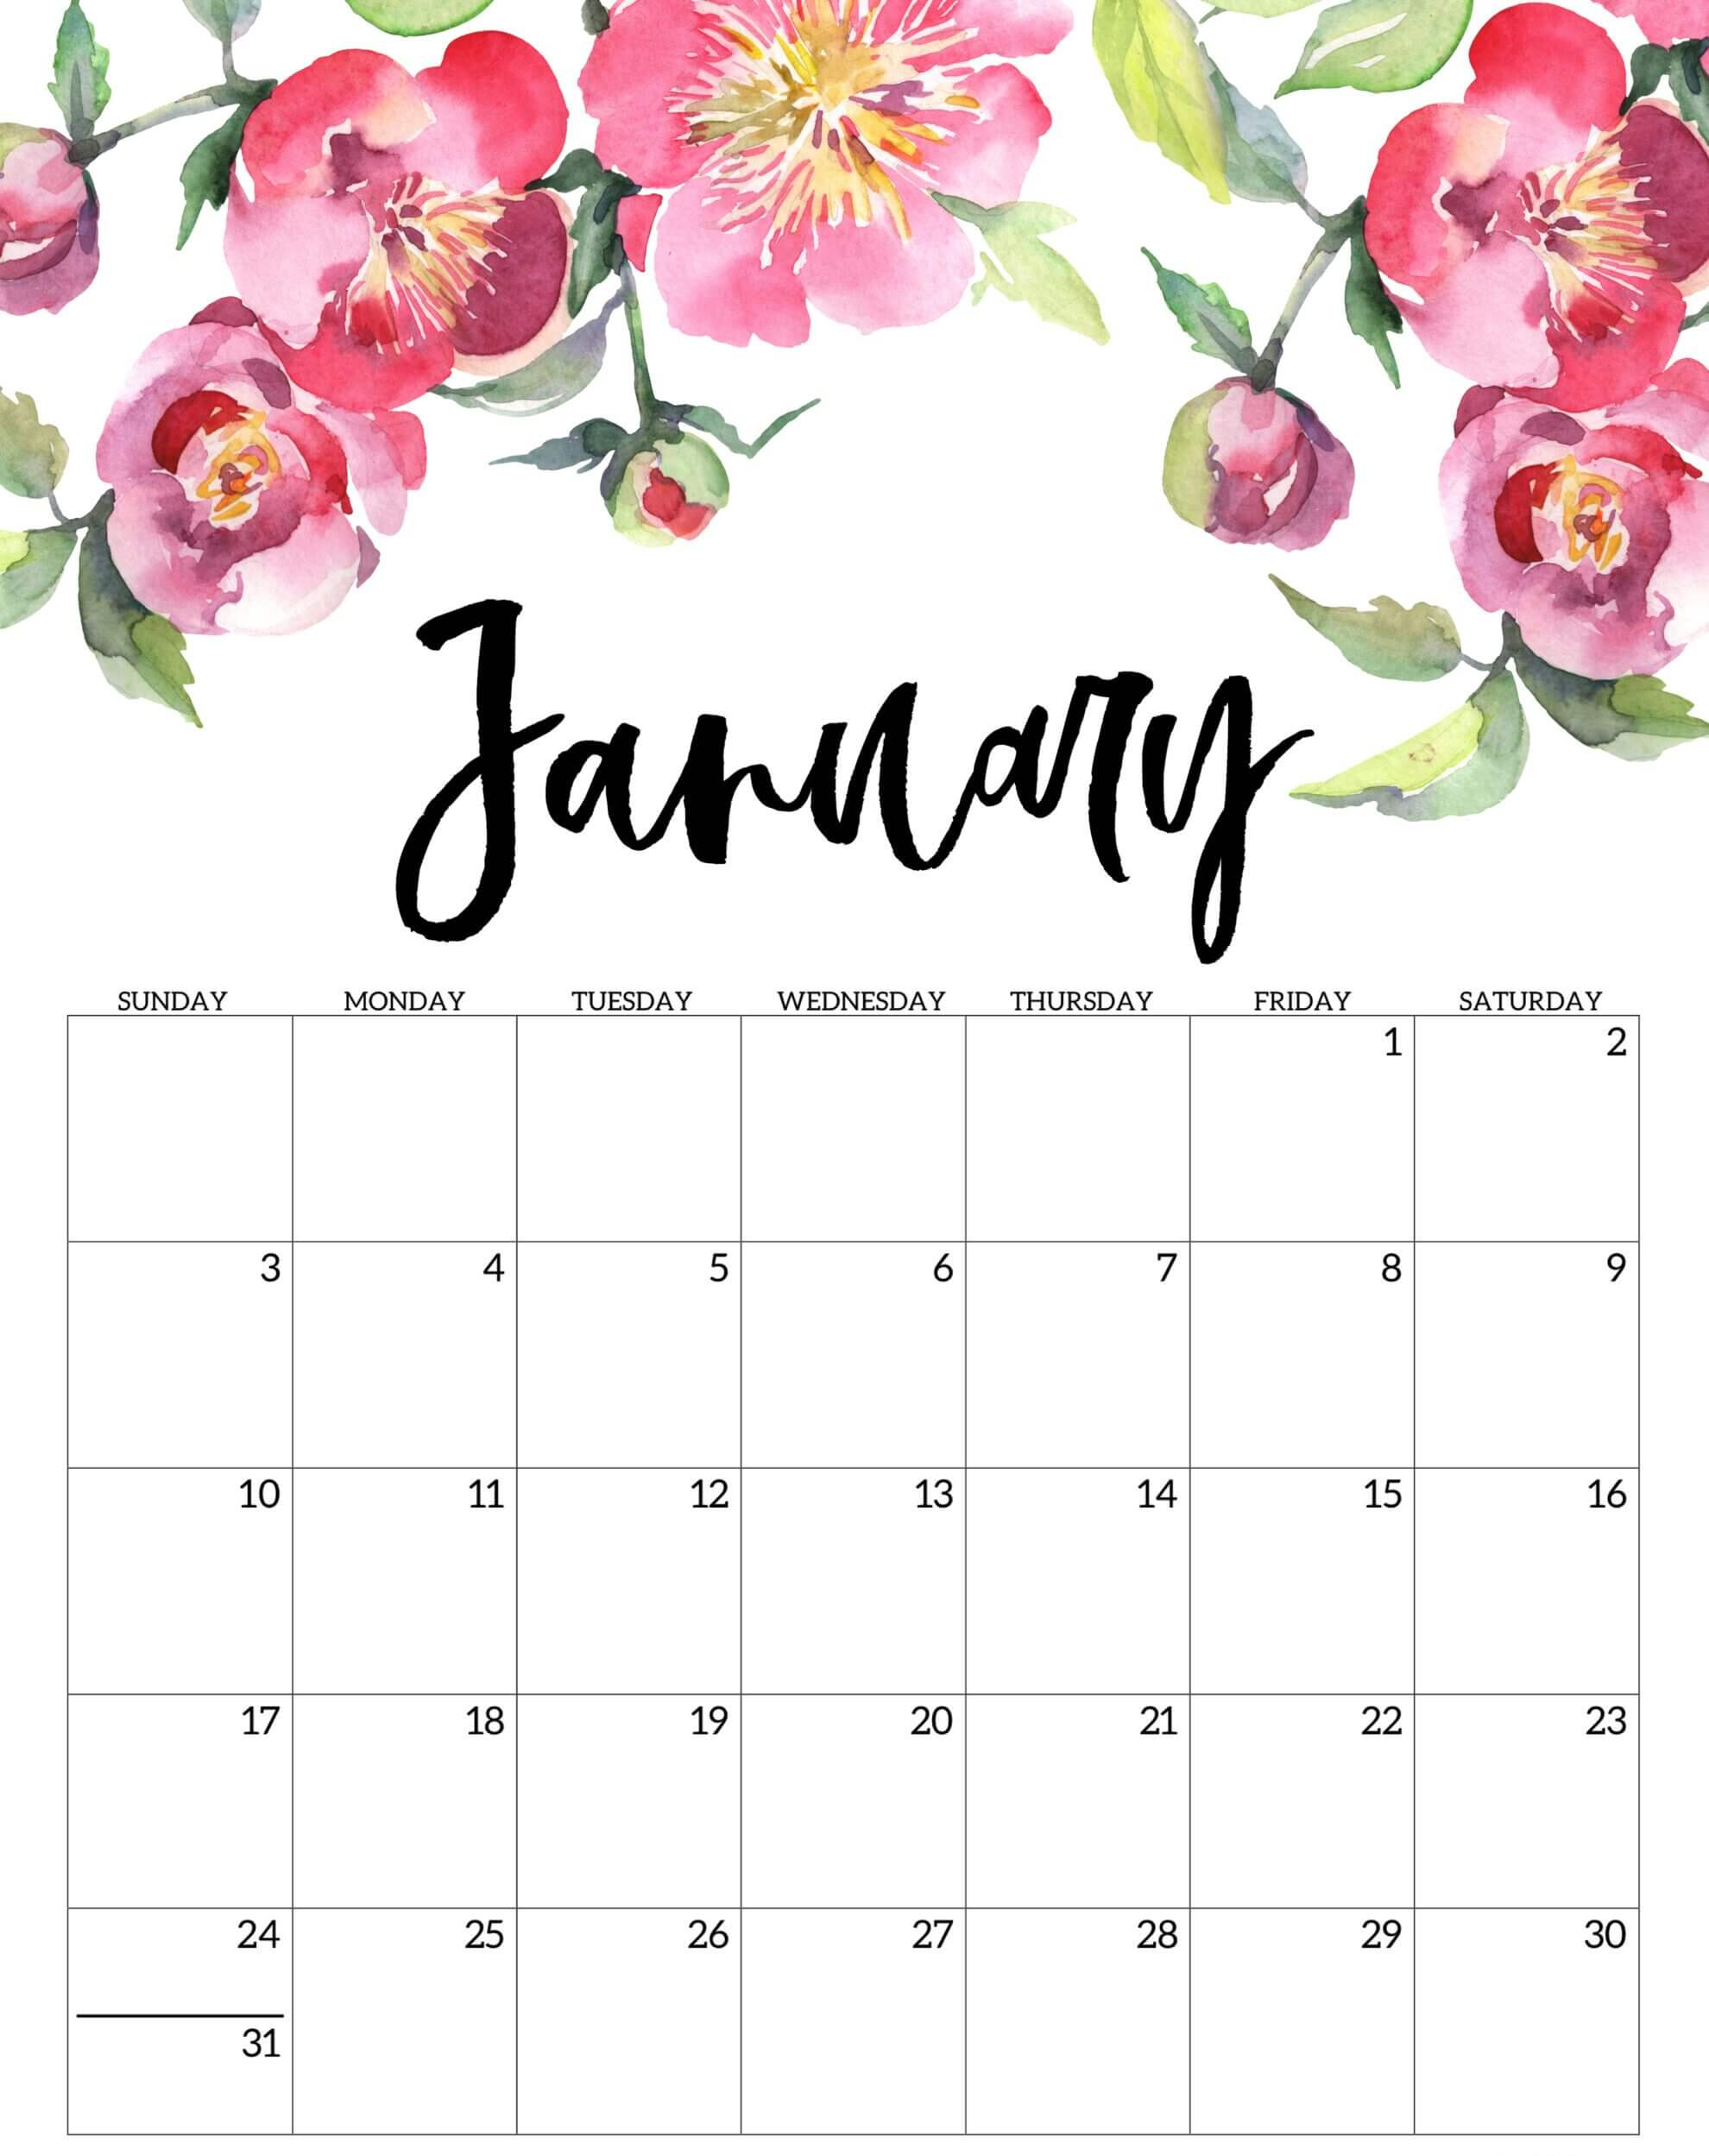 Cute January 2021 Calendar Template - Free Printable 2021 ...